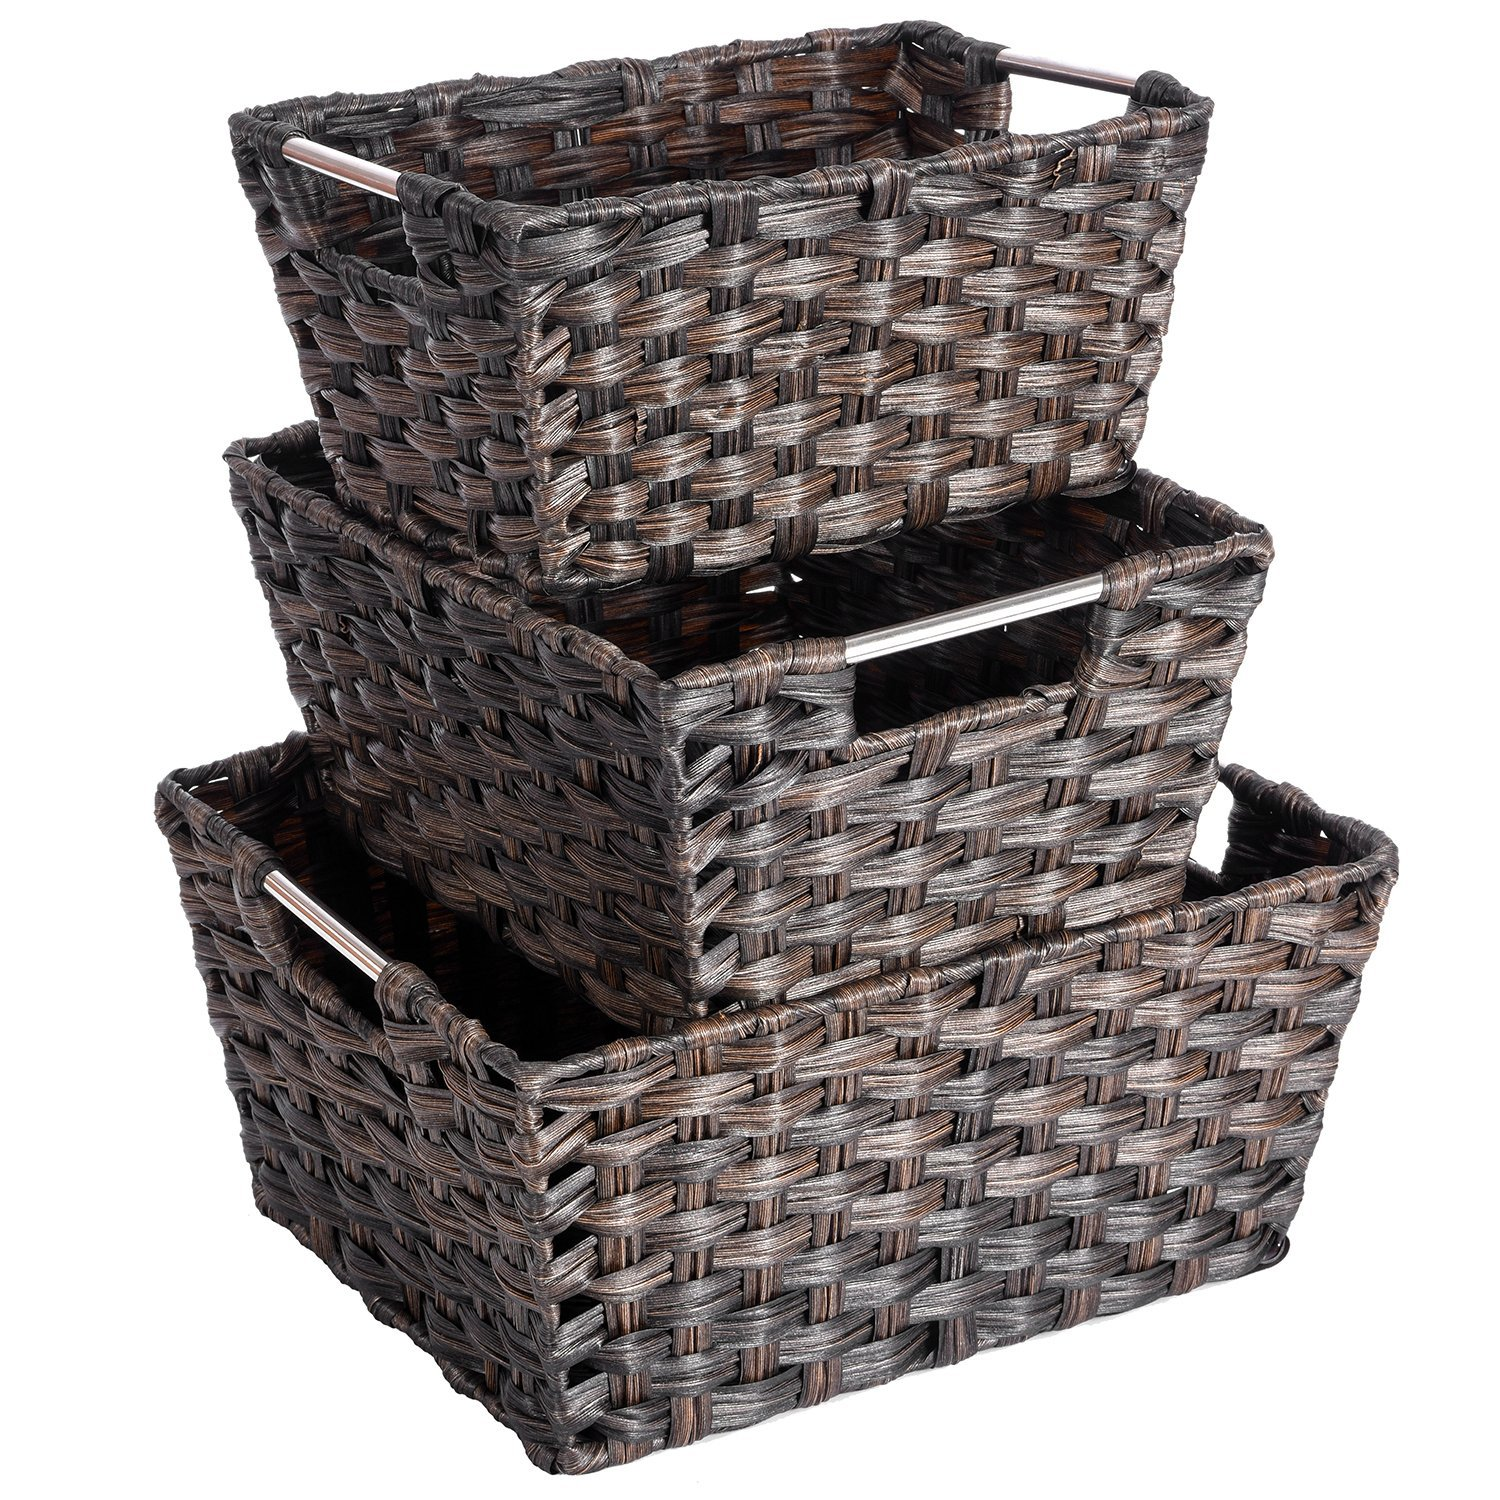 Rattan Basket, Set Of 3 Rectangular Wicker Woven Nesting Baskets Storage  Bins Containers Organizers Boxes